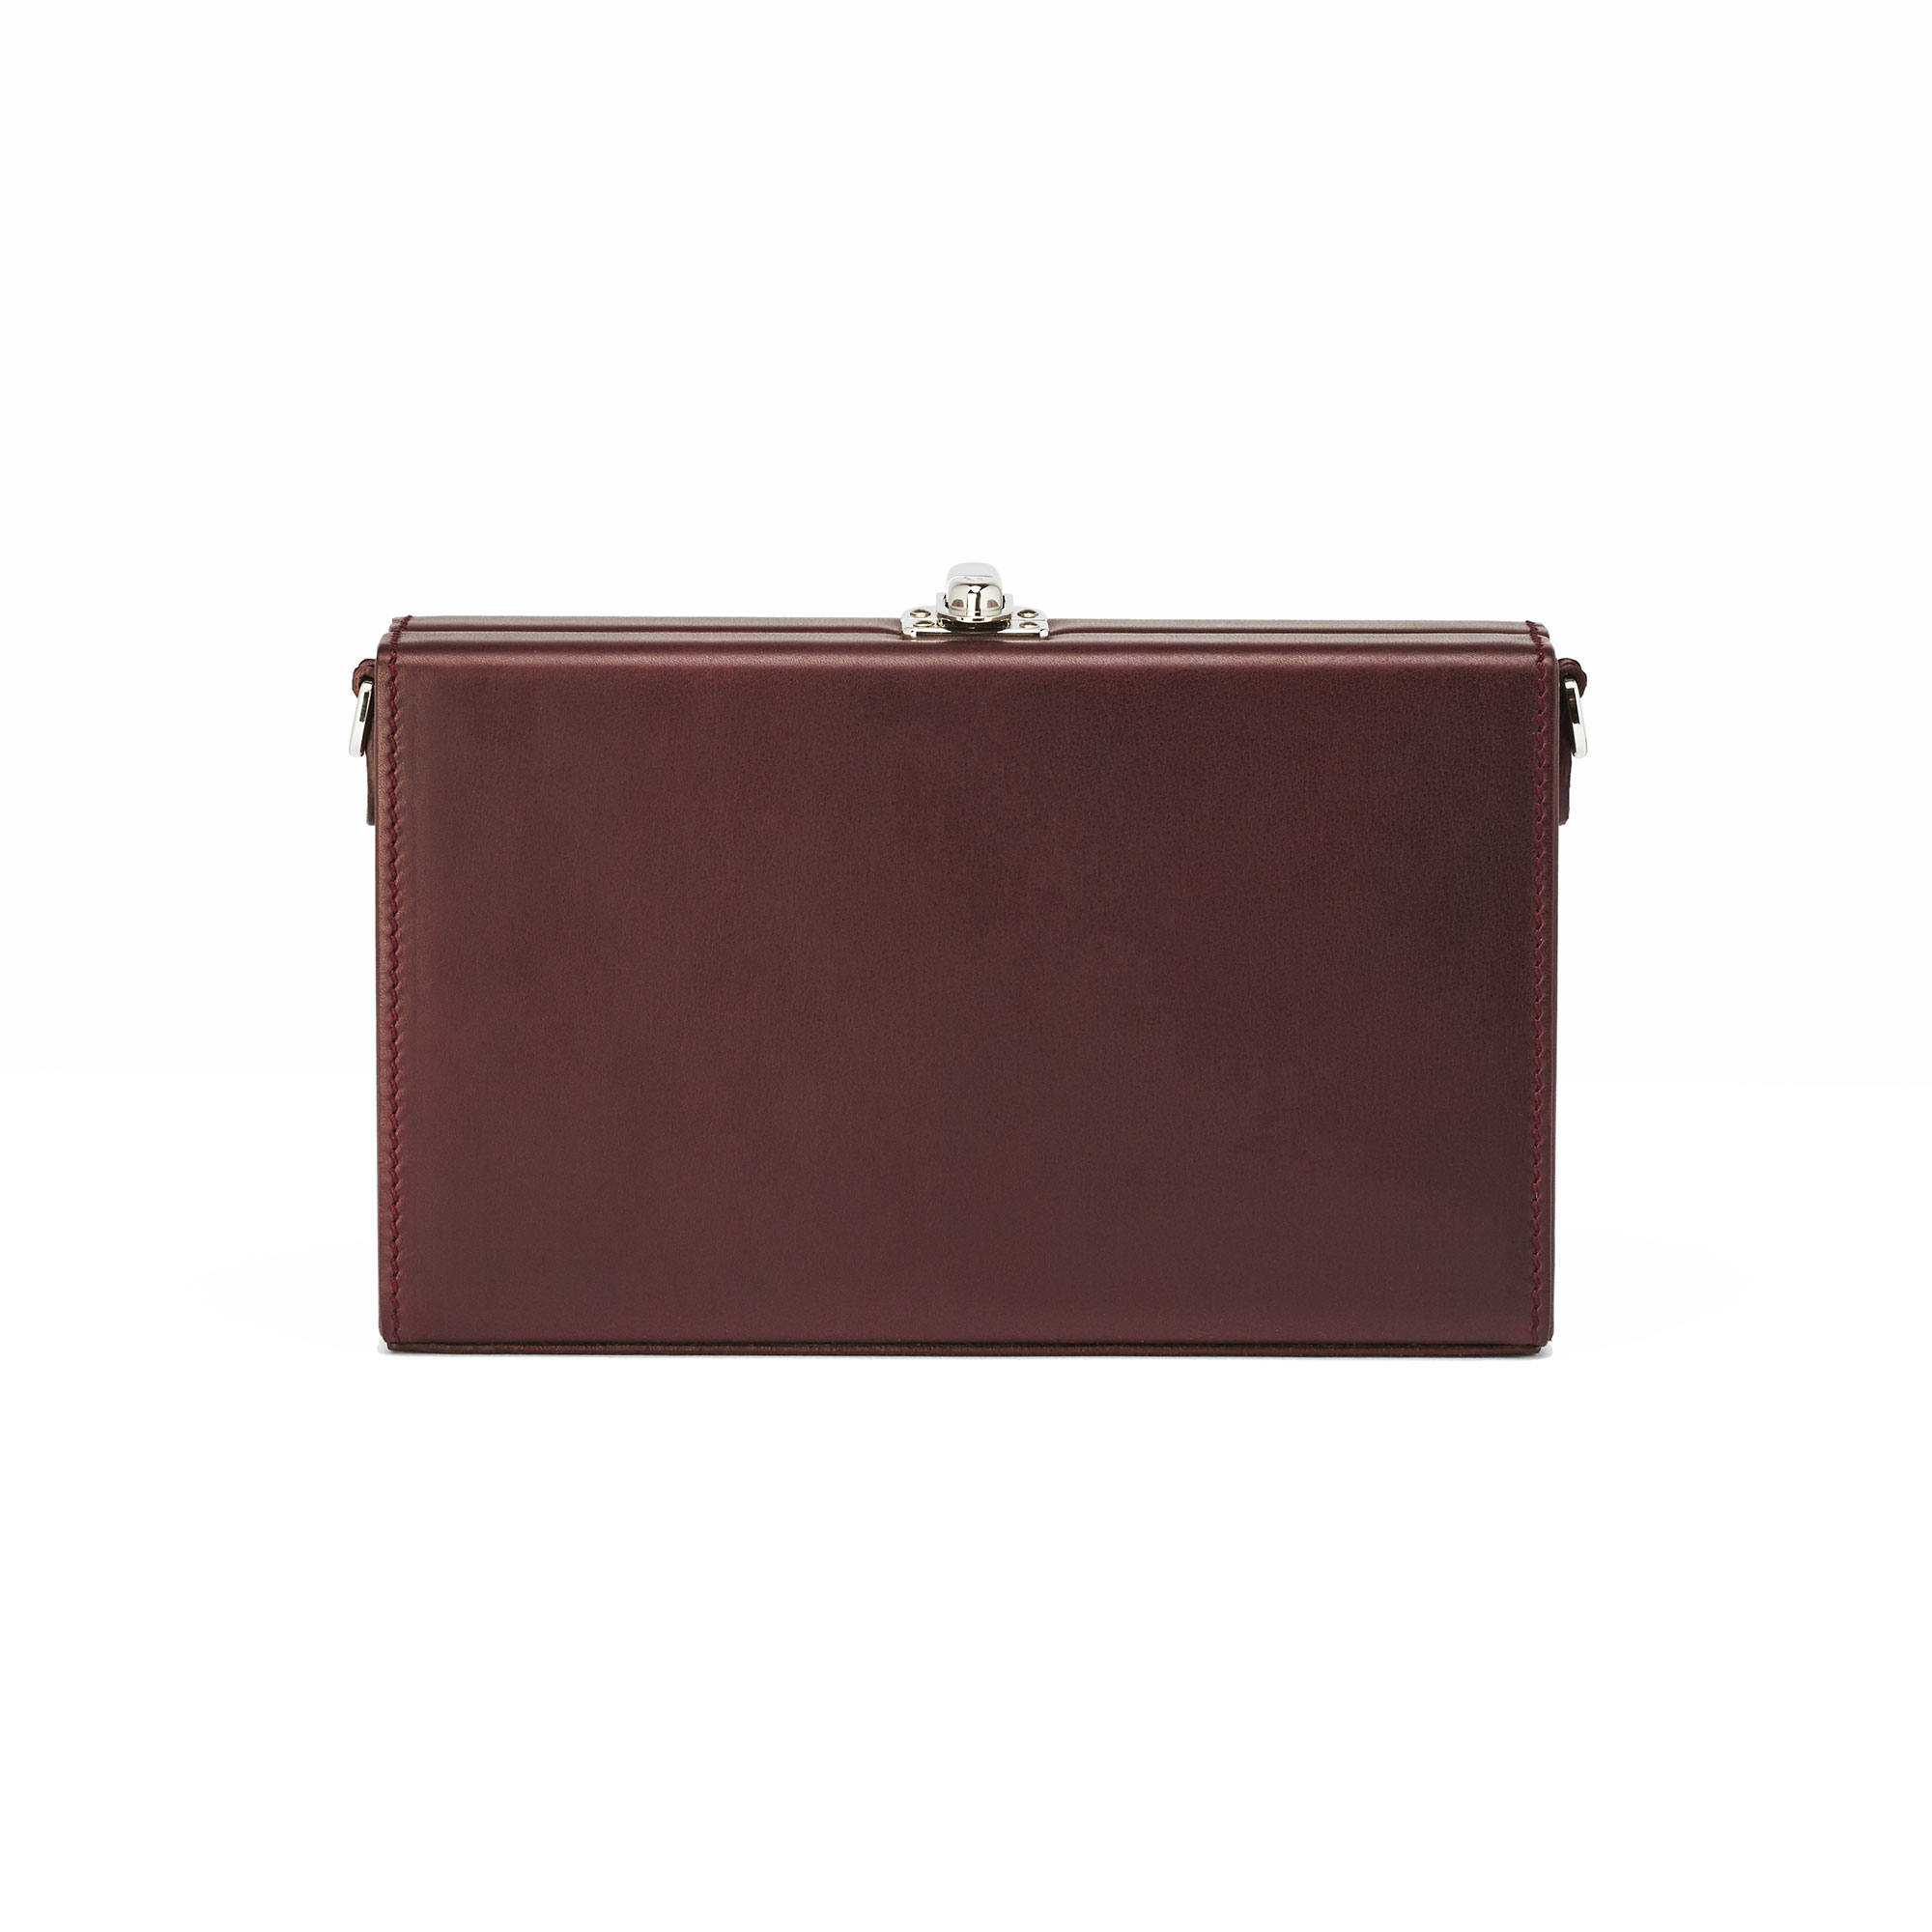 Box-Bertoncina-bordeaux-french-calf-bag-Bertoni-1949_01